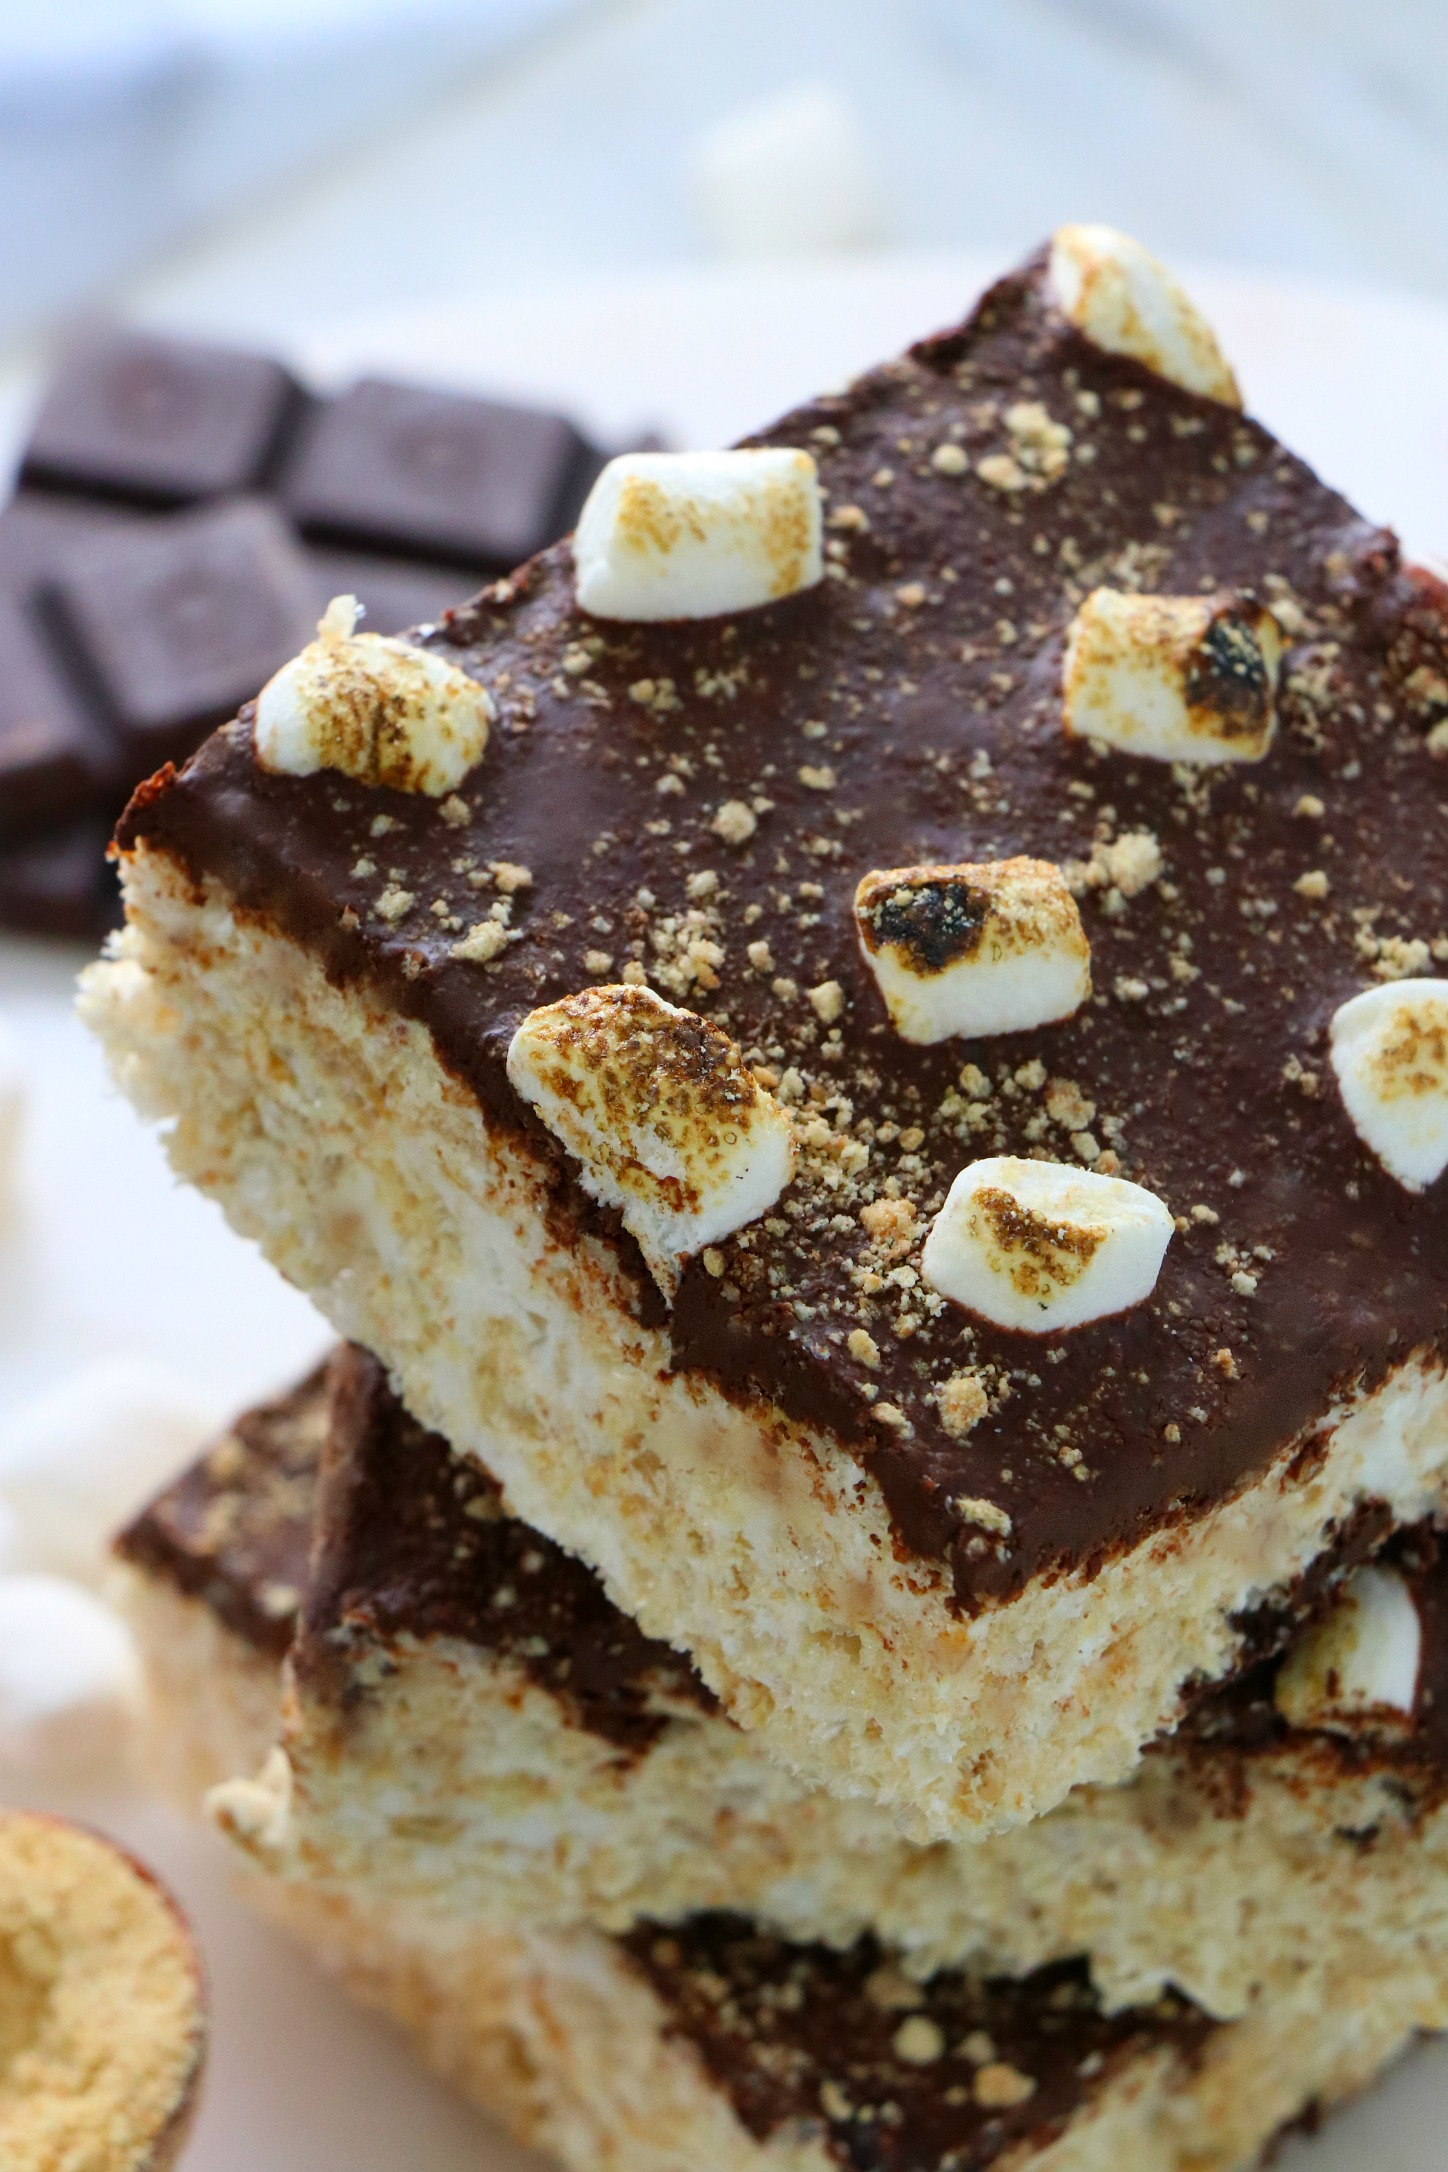 Vegan S'mores Marshmallow Treats